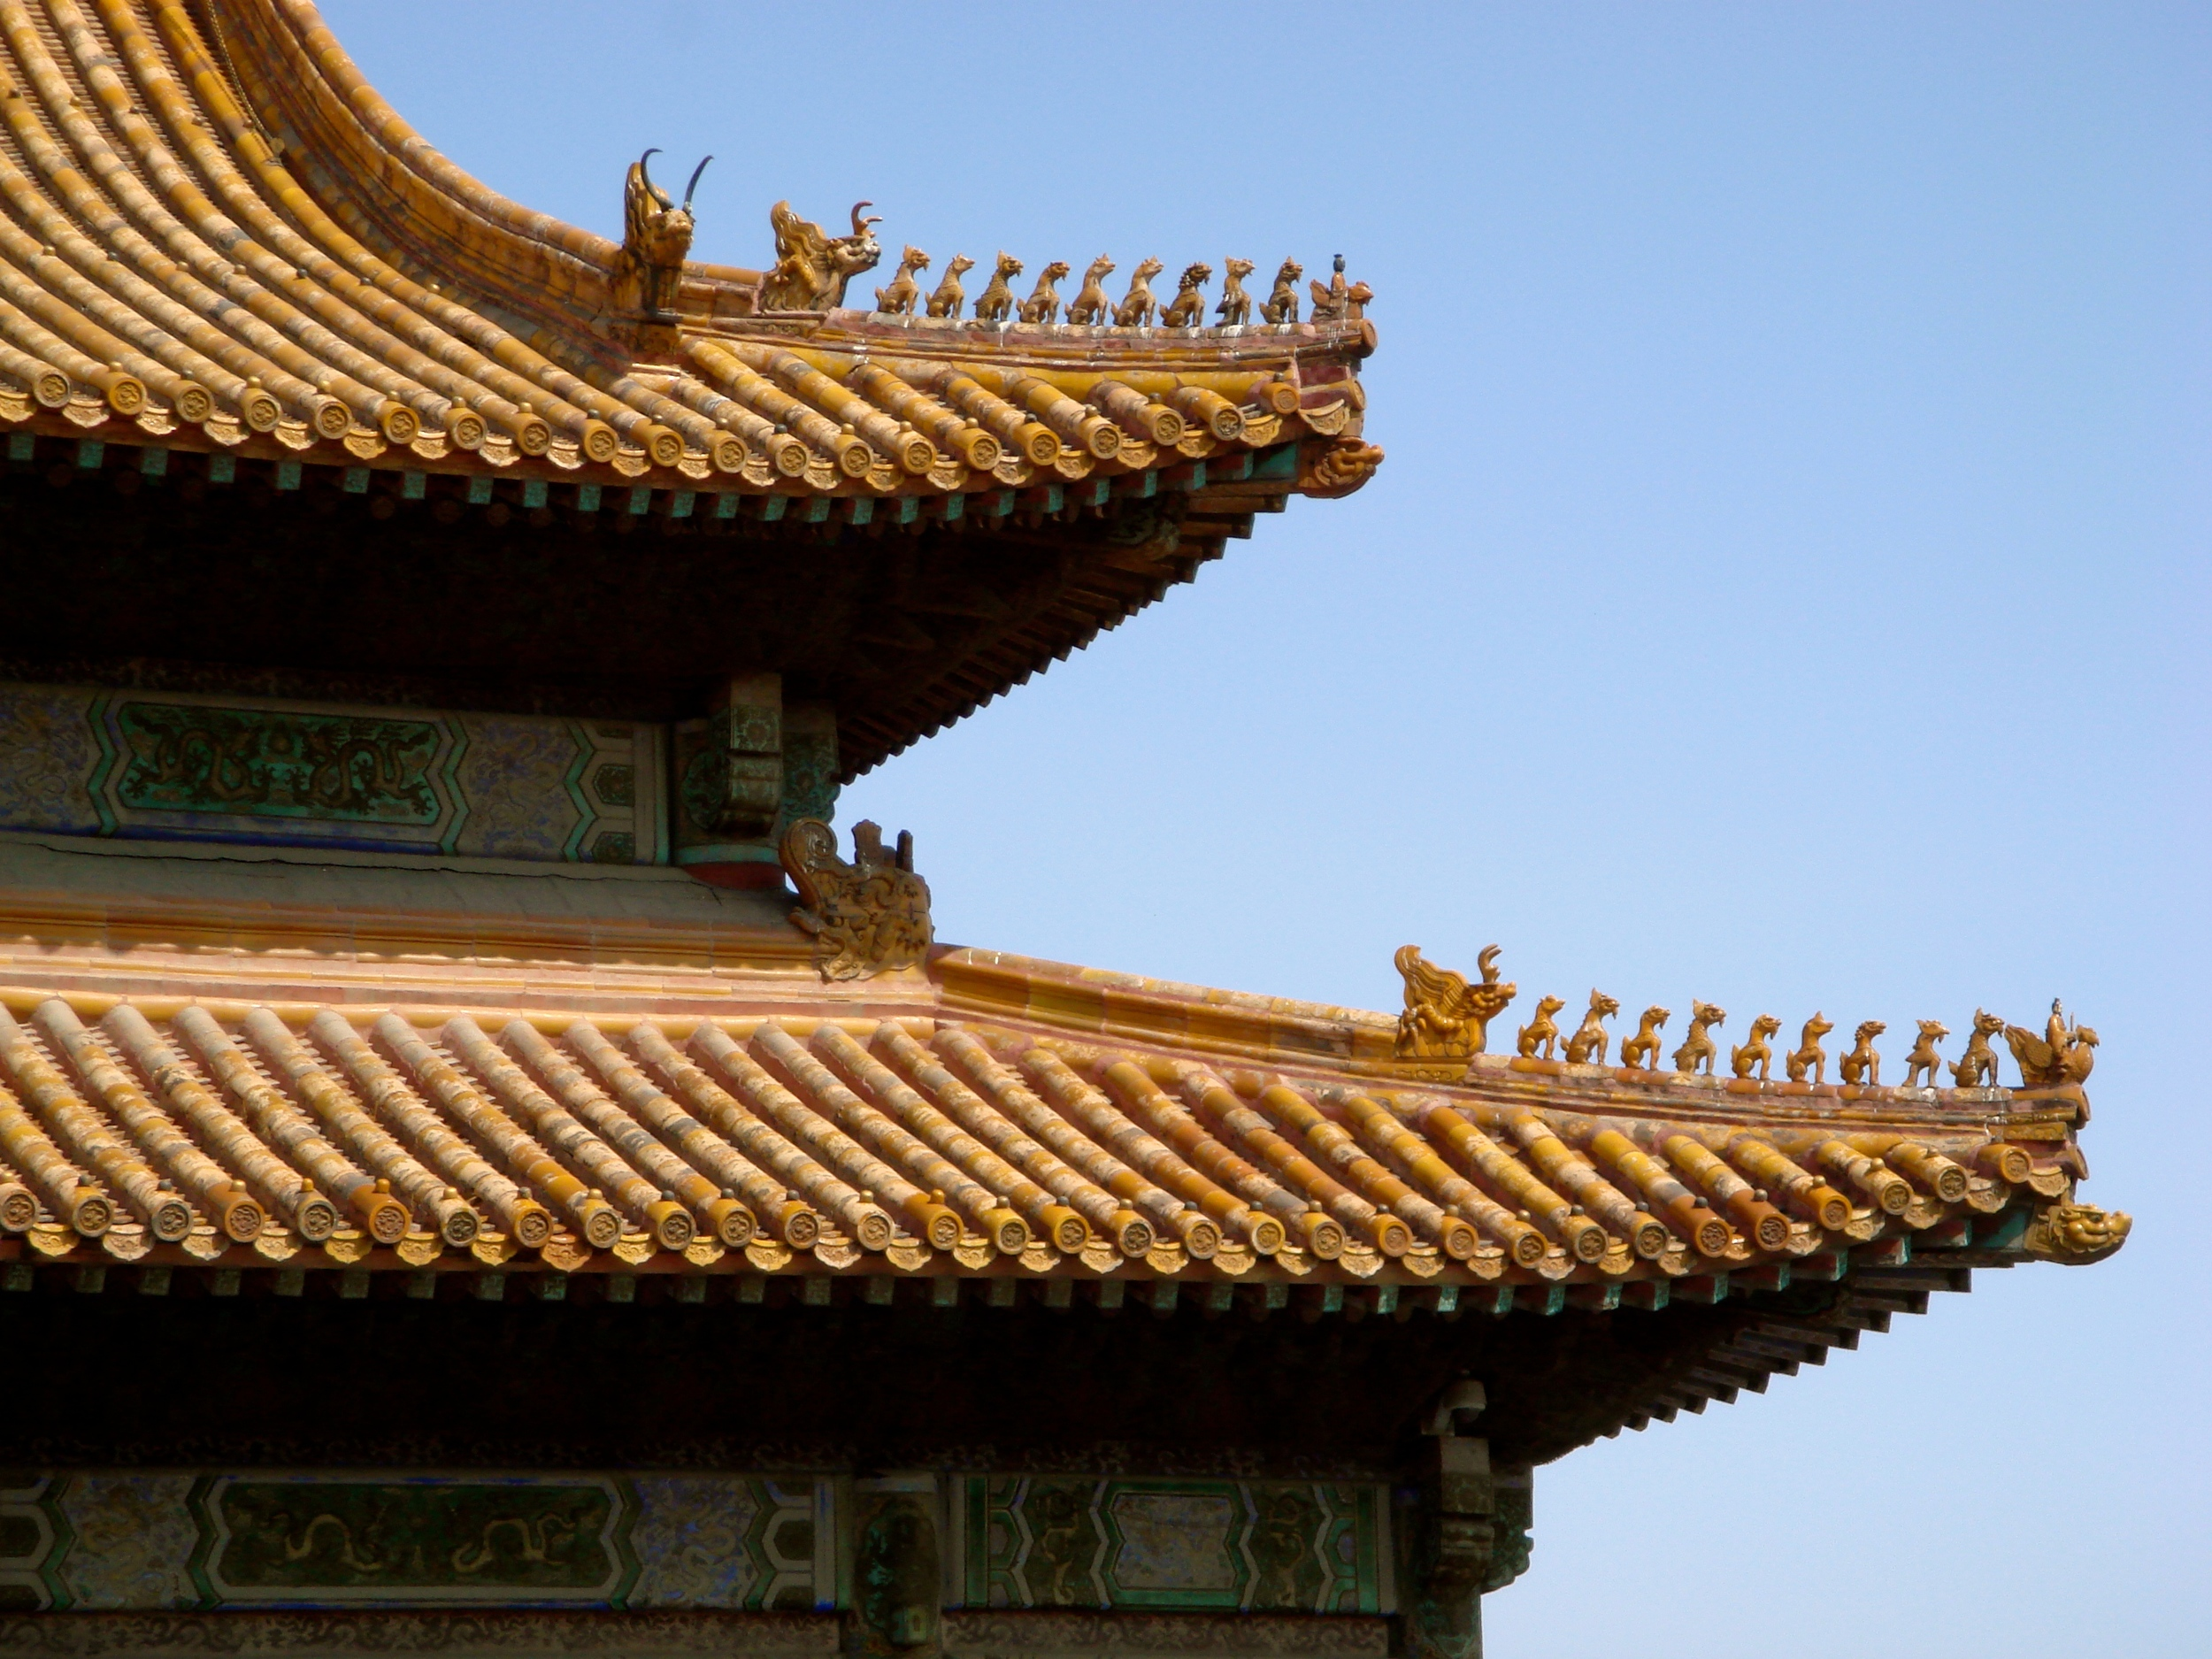 The beautiful golden wing-tipped roof tops at The Forbidden Palace in Beijing, China